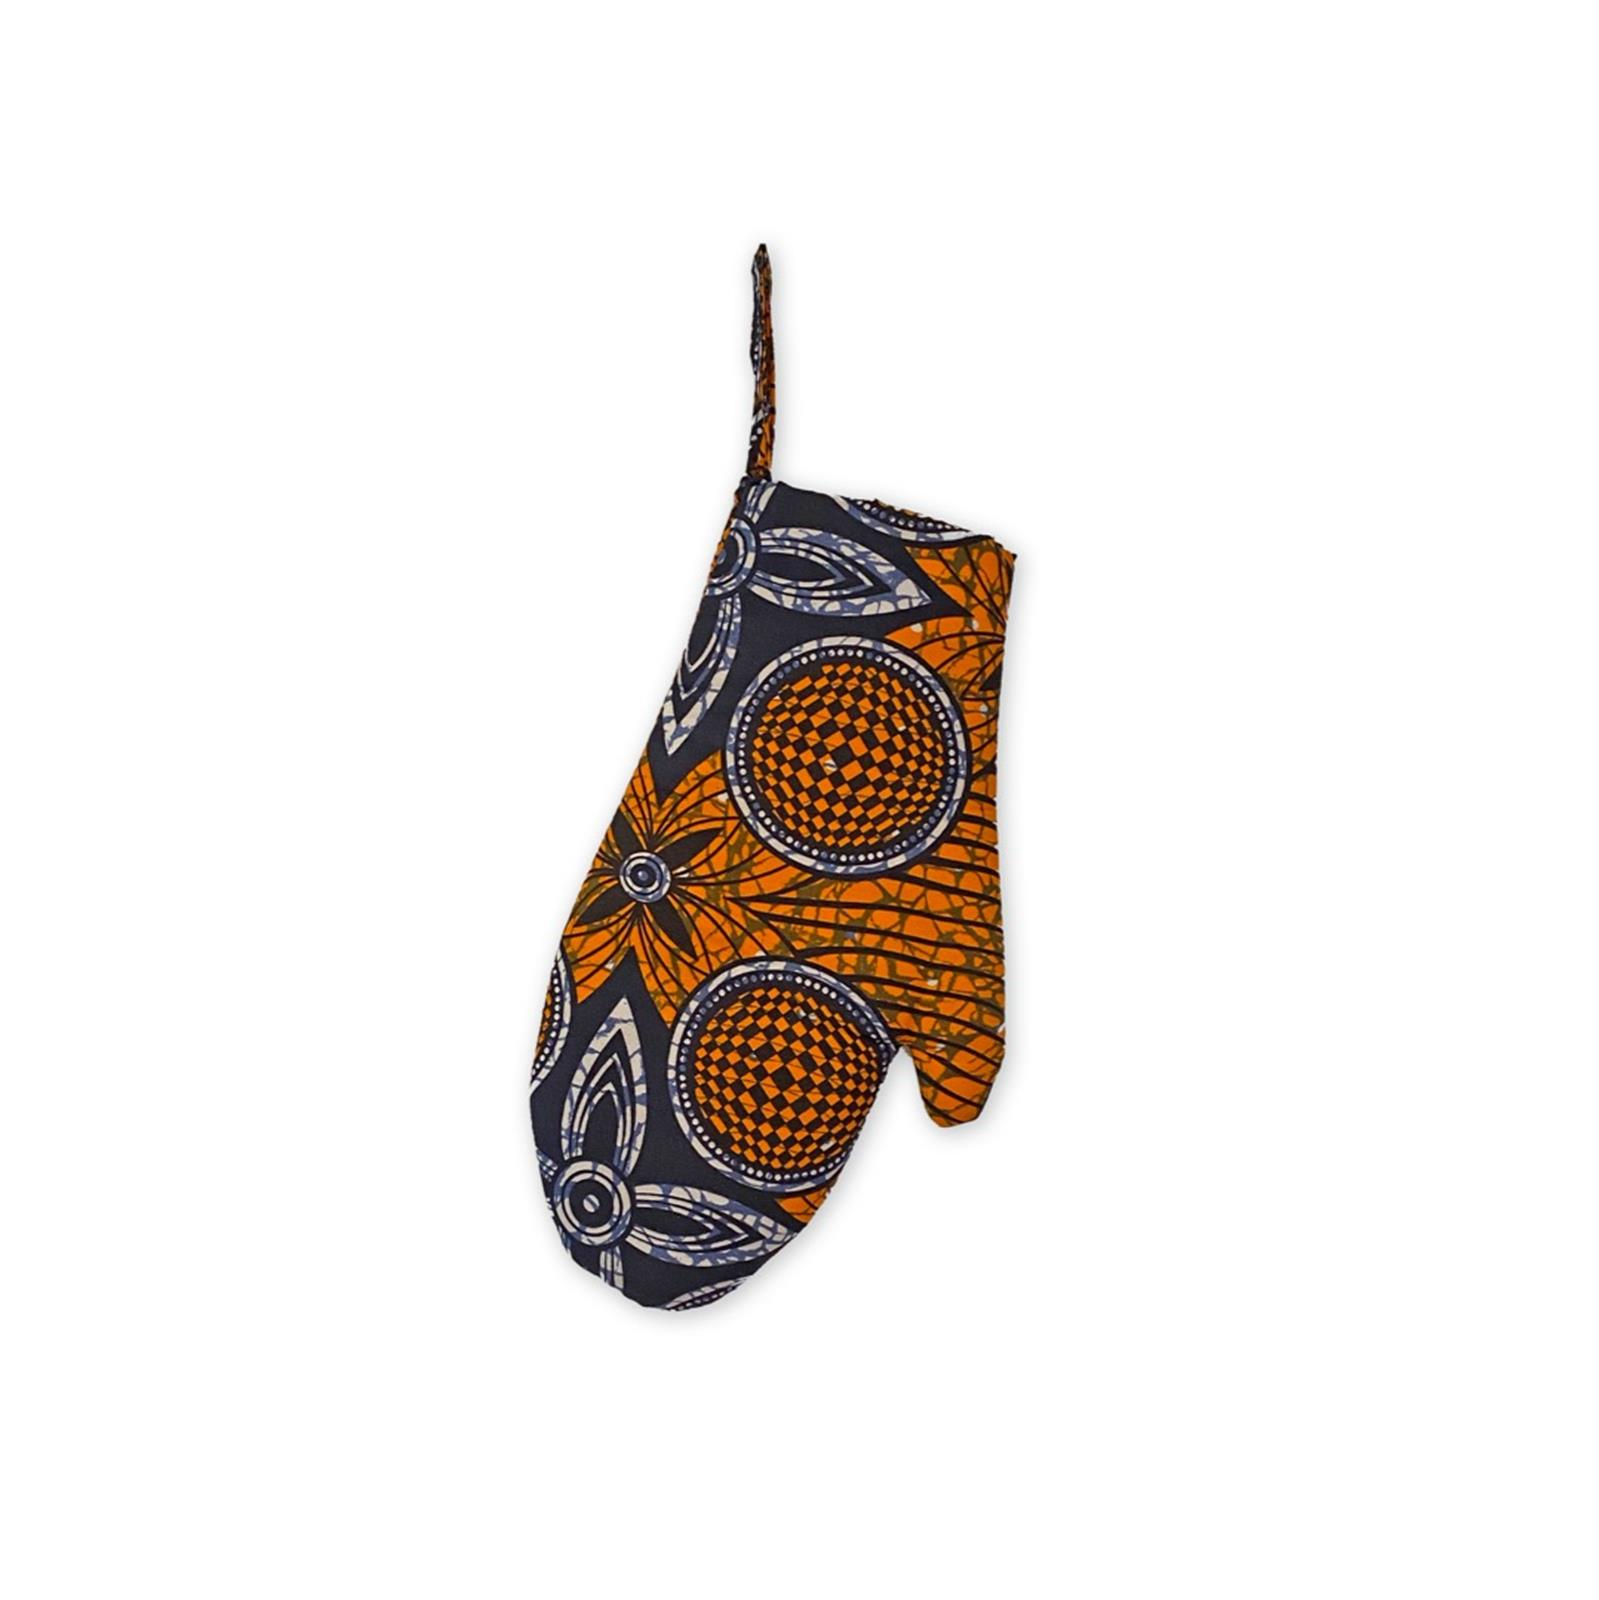 Oven mitt from Zambia